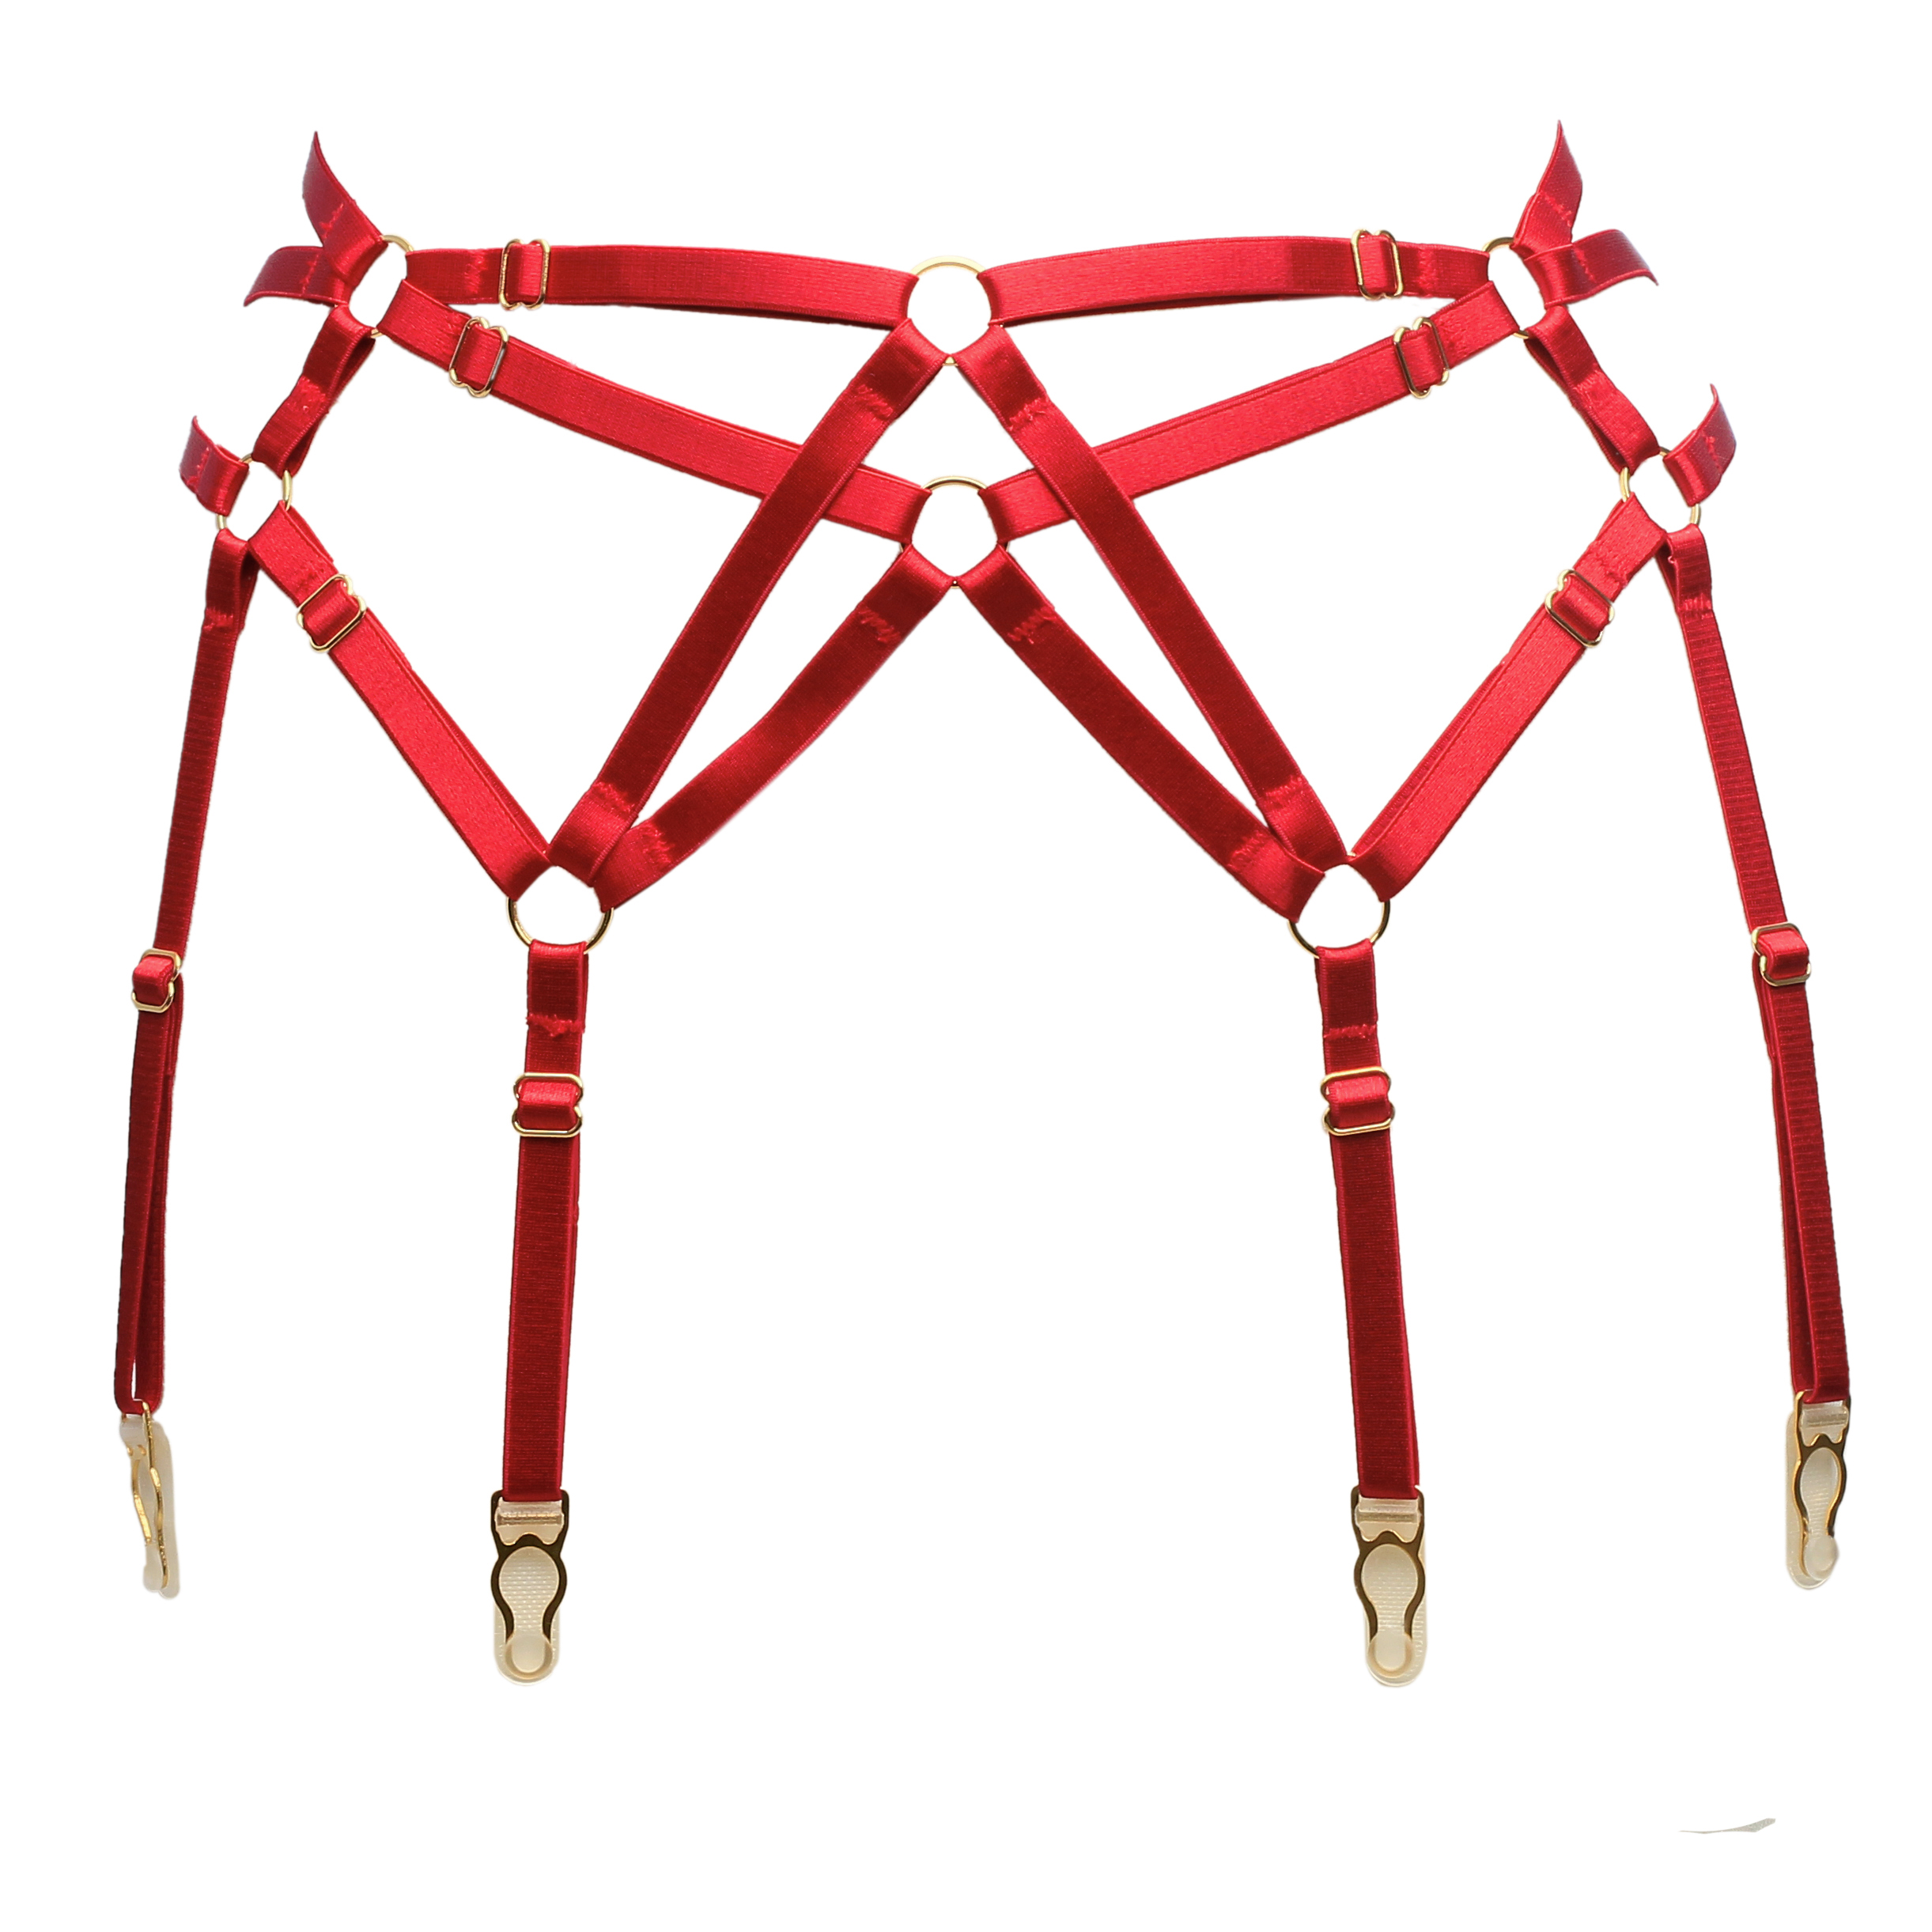 Six Strap Bondage Garter Belt in Red With Golden Sliders